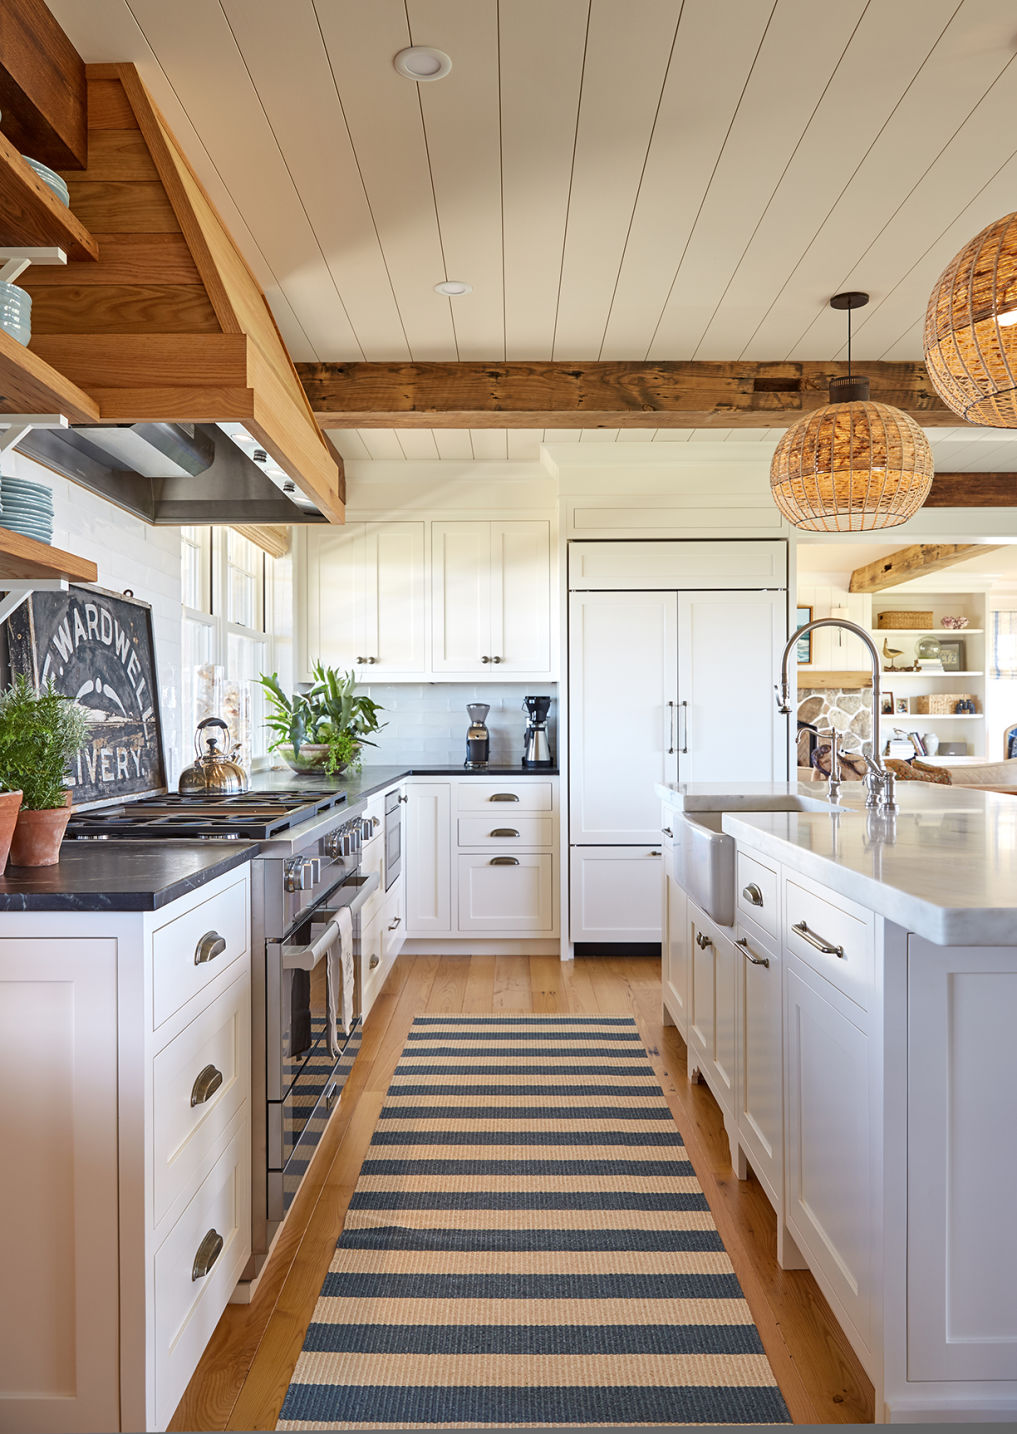 Beautiful white farmhouse kitchen with natural wood accents and open shelves kellyelko.com #kitchen #kitchendesign #kitchendecor #farmhousekitchen #farmhousestyle #whitekitchen